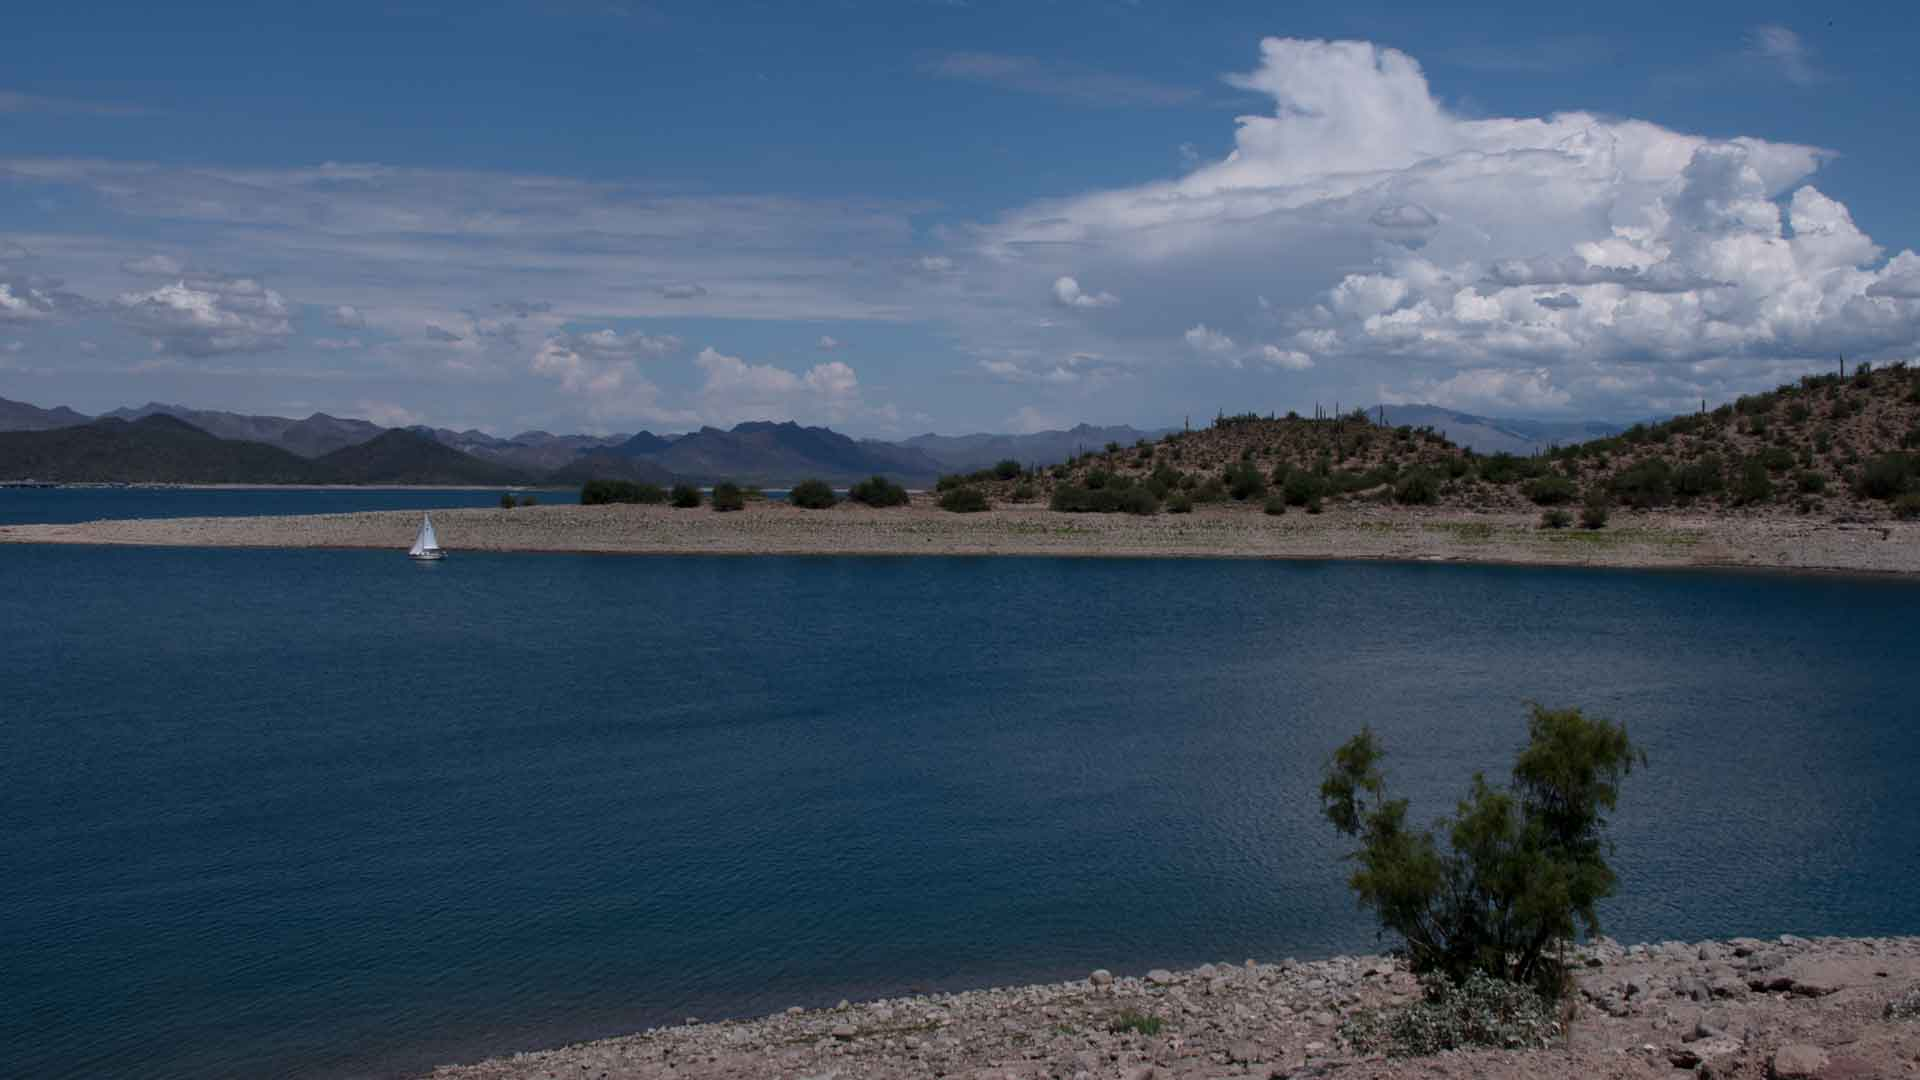 Lake Pleasant, north of Phoenix, is a major reservoir for Colorado River water.  Each summer the lake is pumped down to send water to Maricopa, Pinal, and Pima counties. July 2021